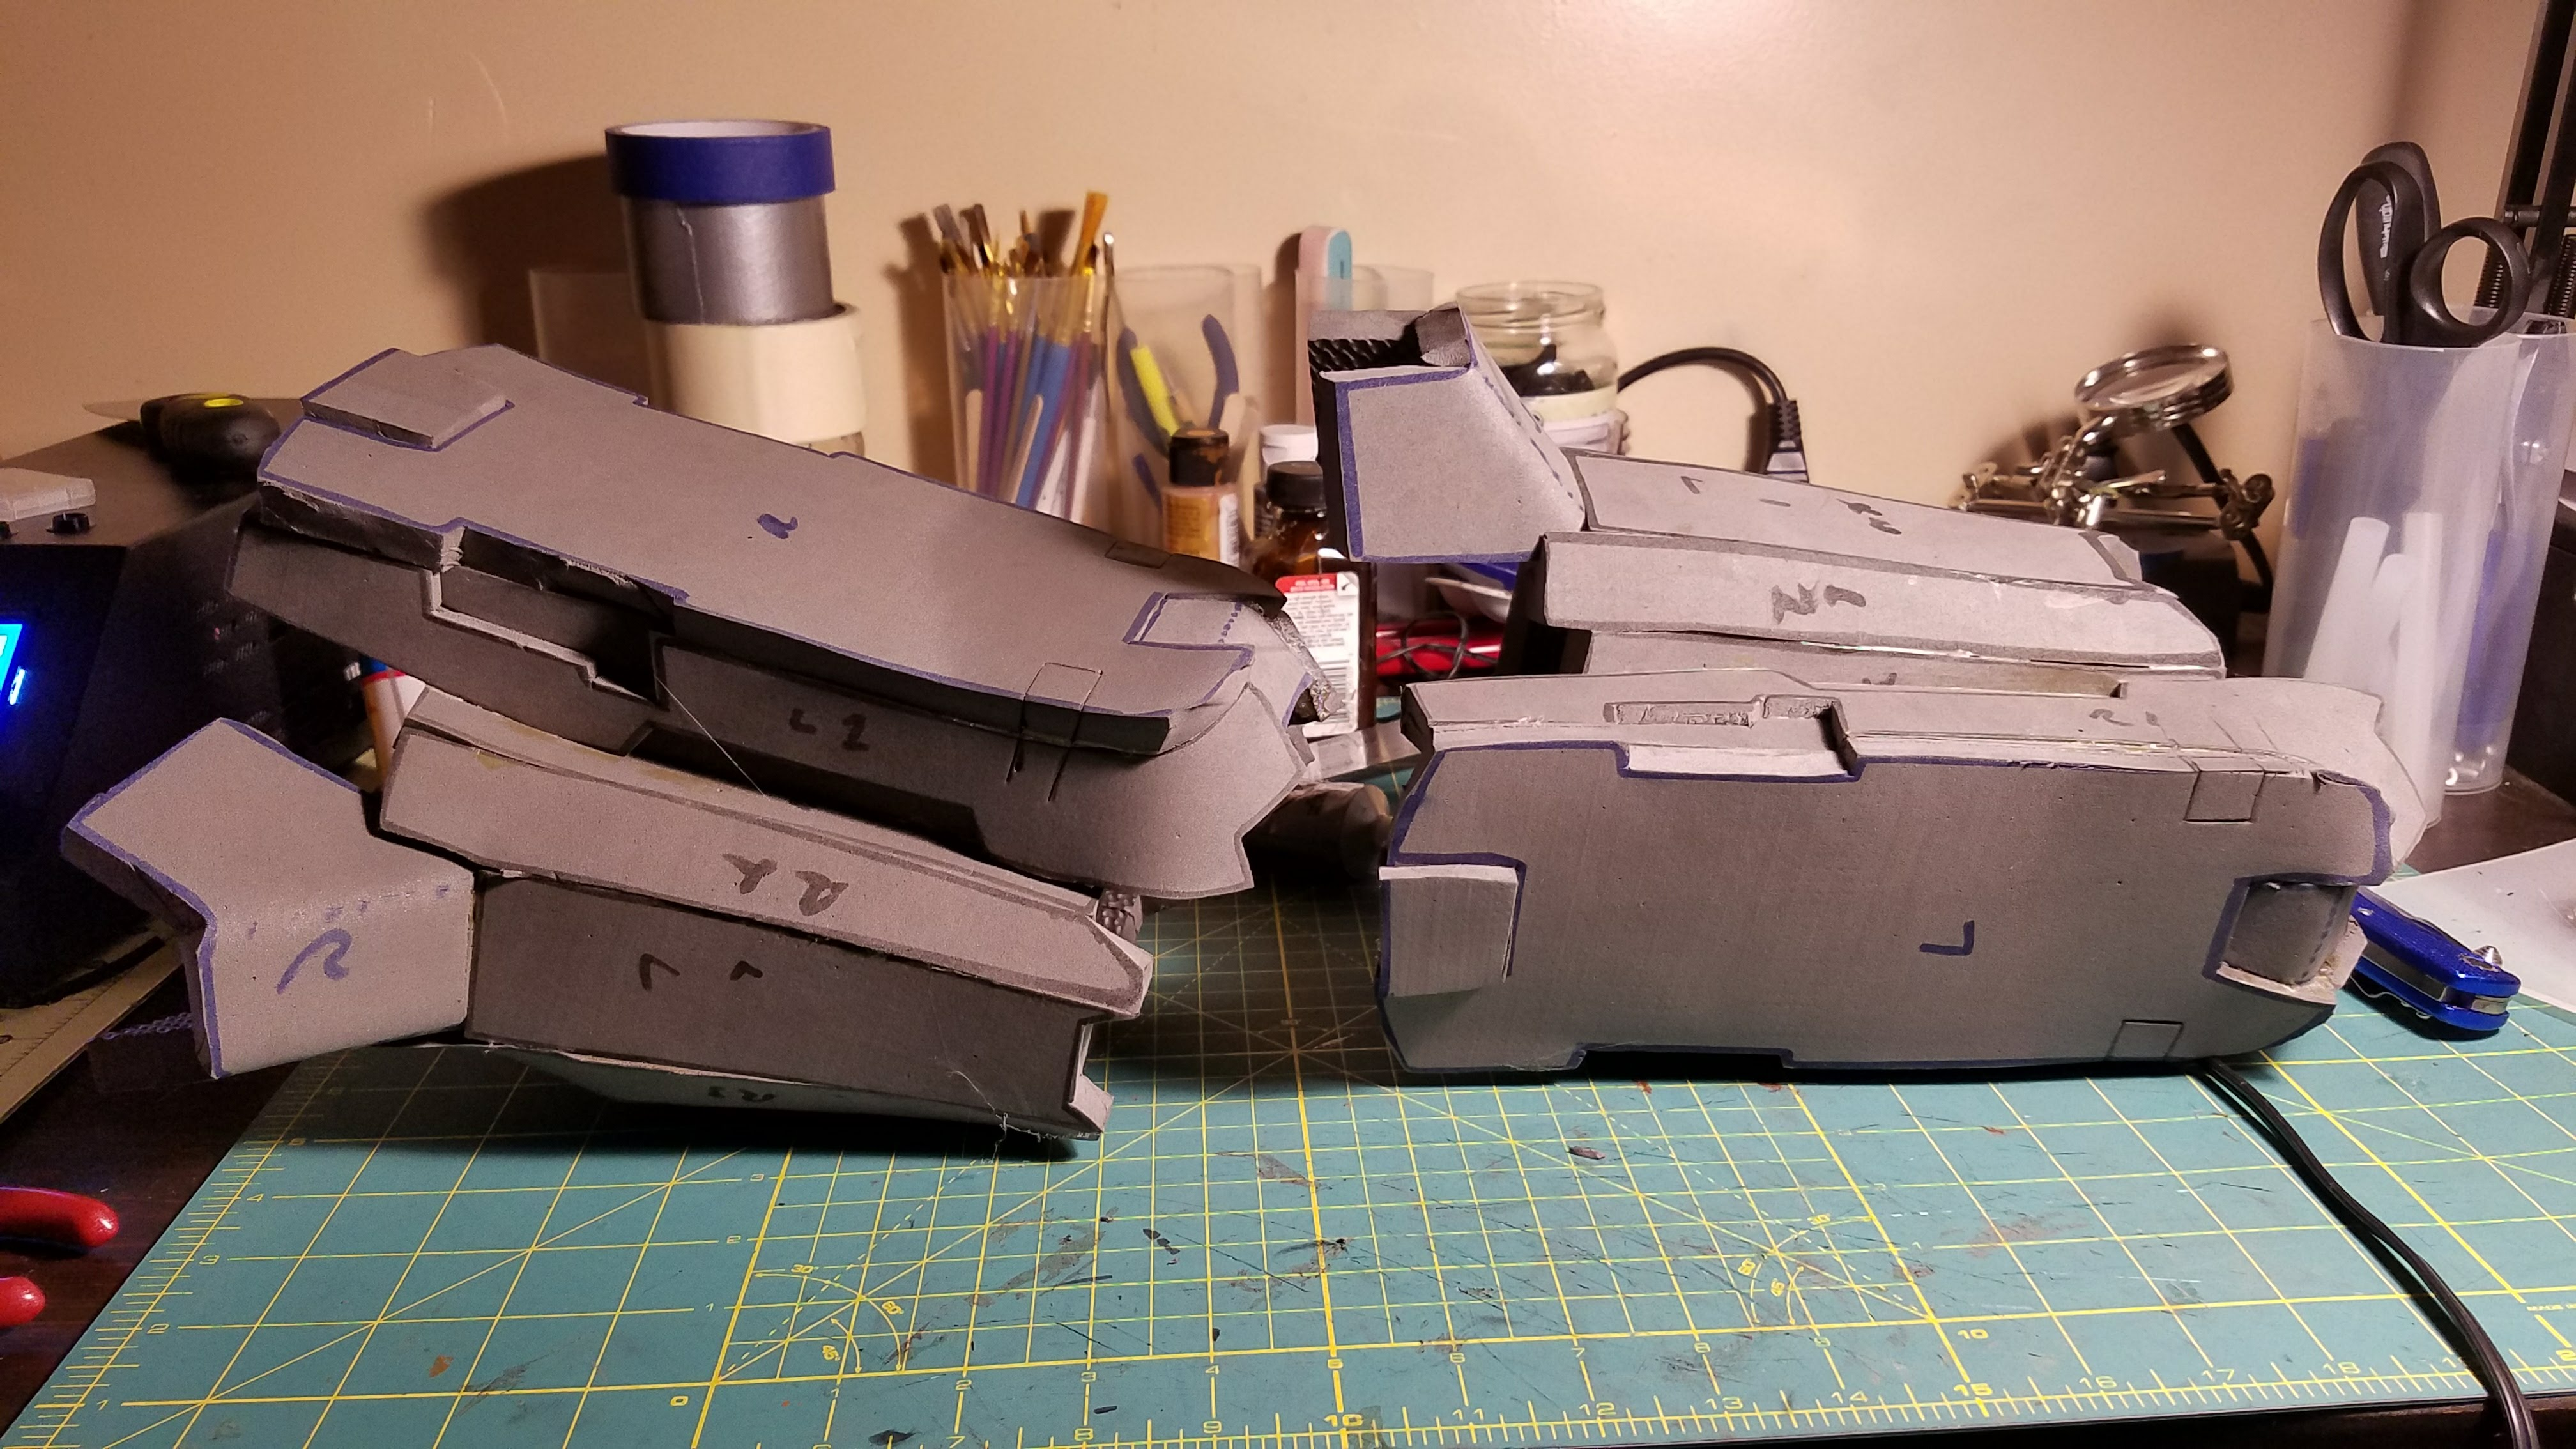 Working on my first Halo build Anubis Armour | Halo Costume and Prop